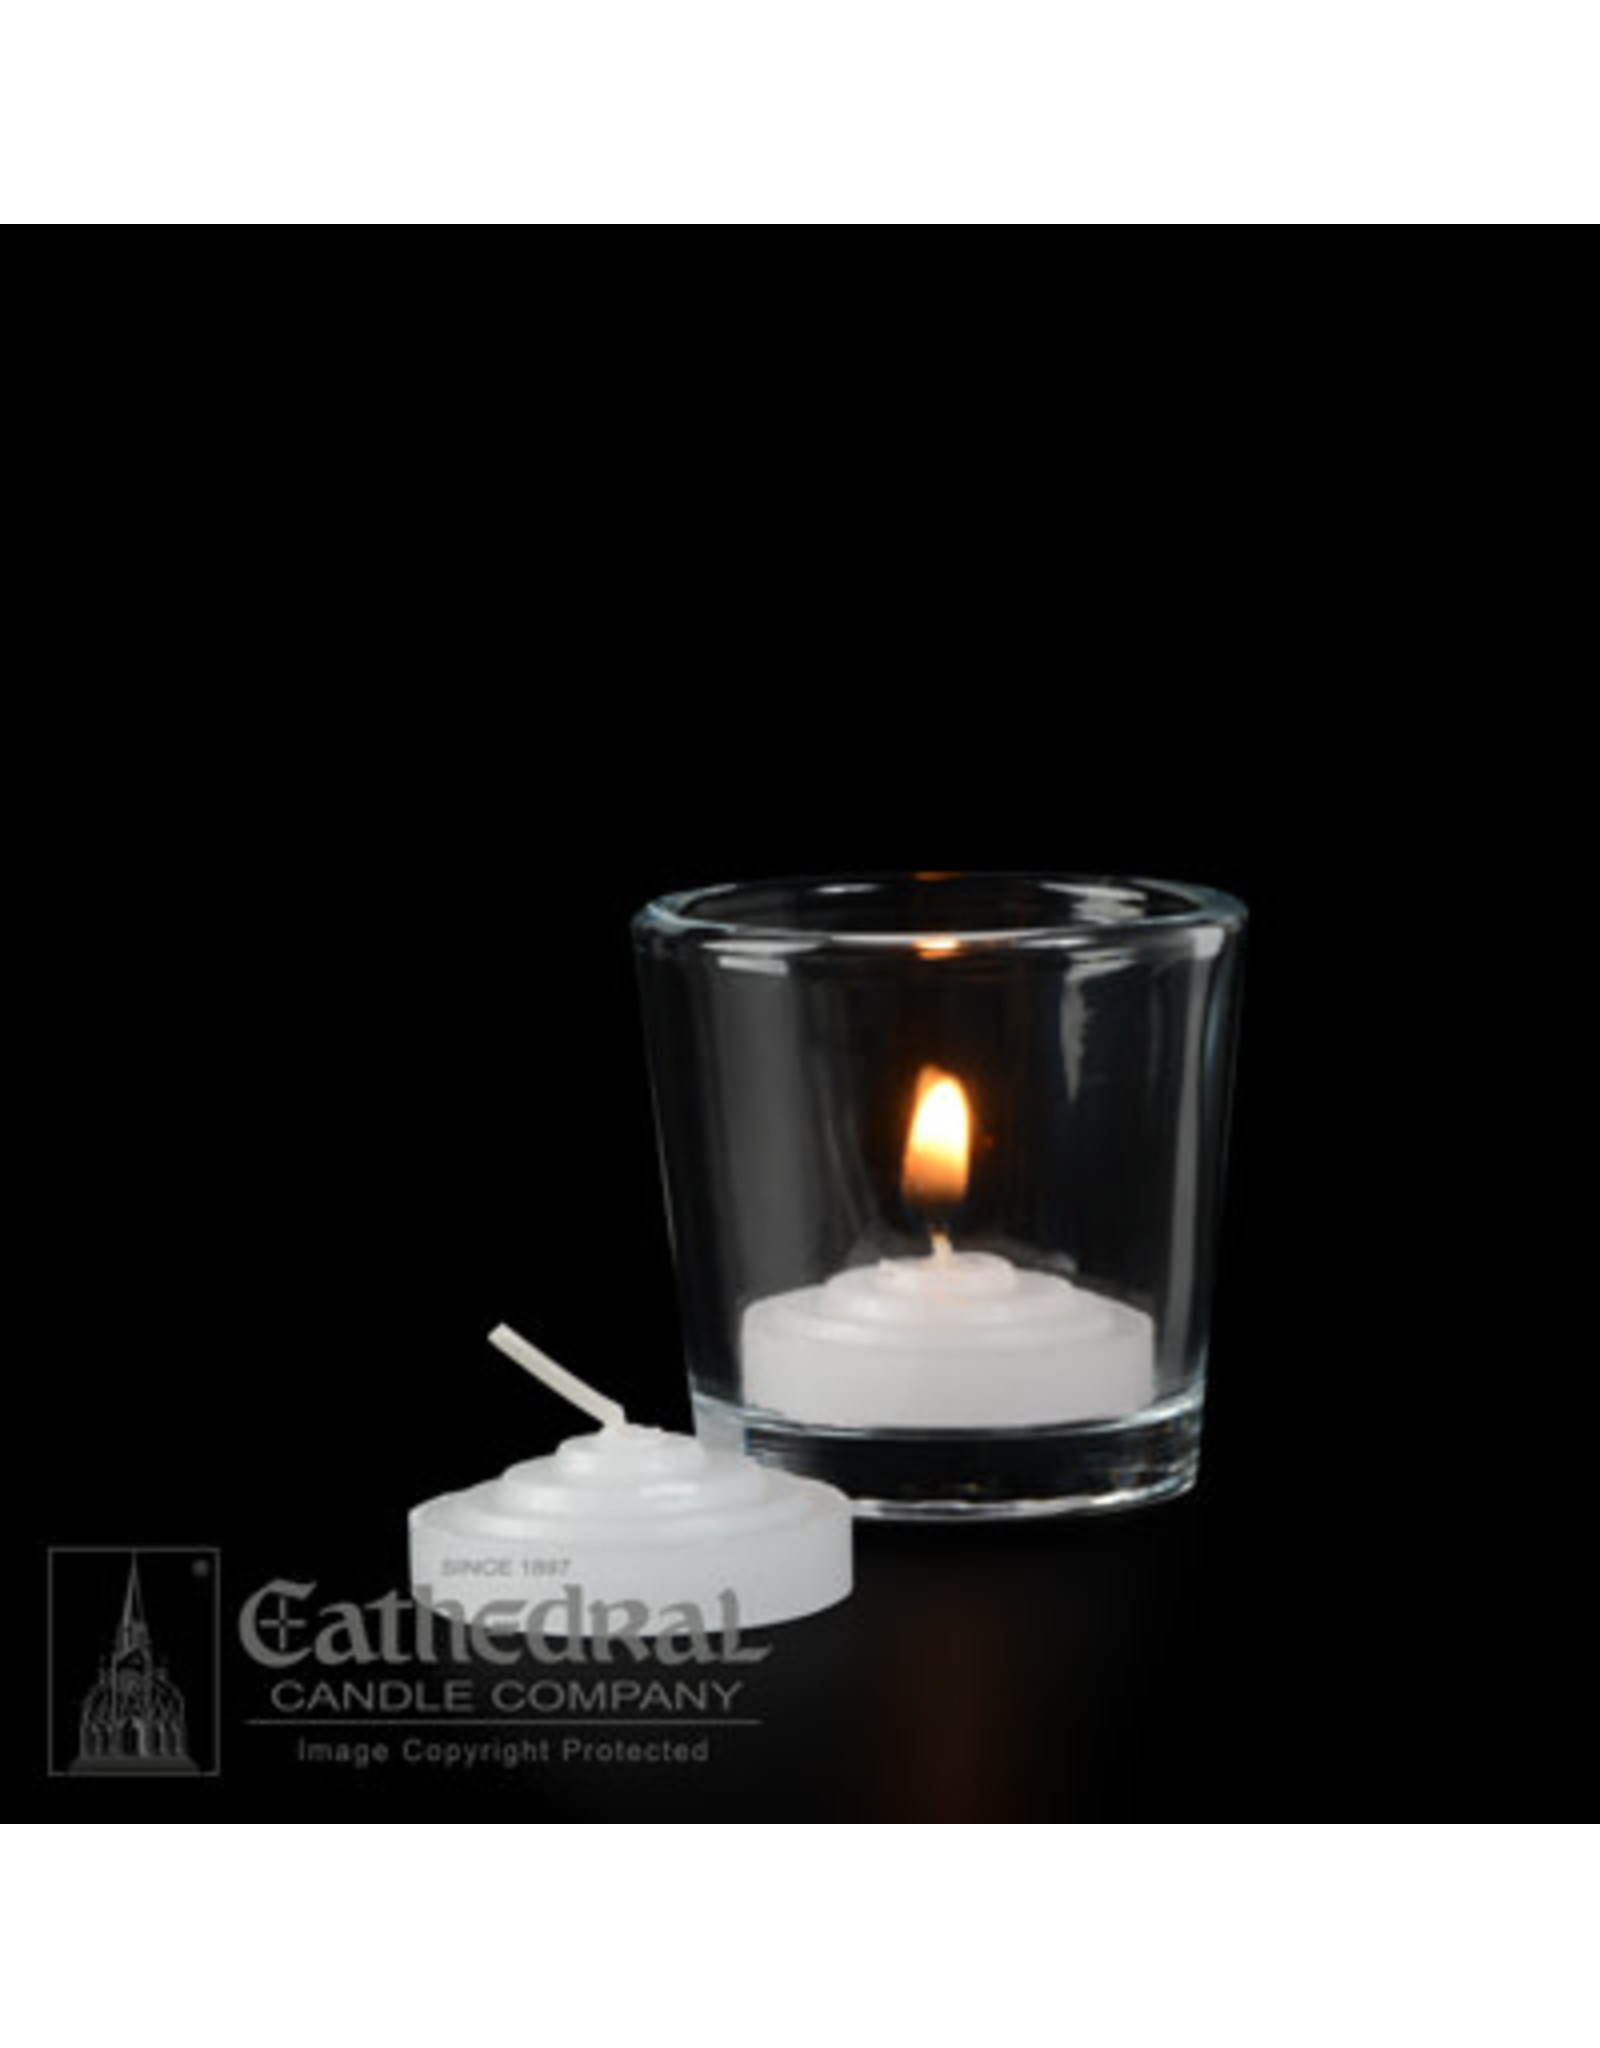 2-Hour Votive Candles (Box of 288)